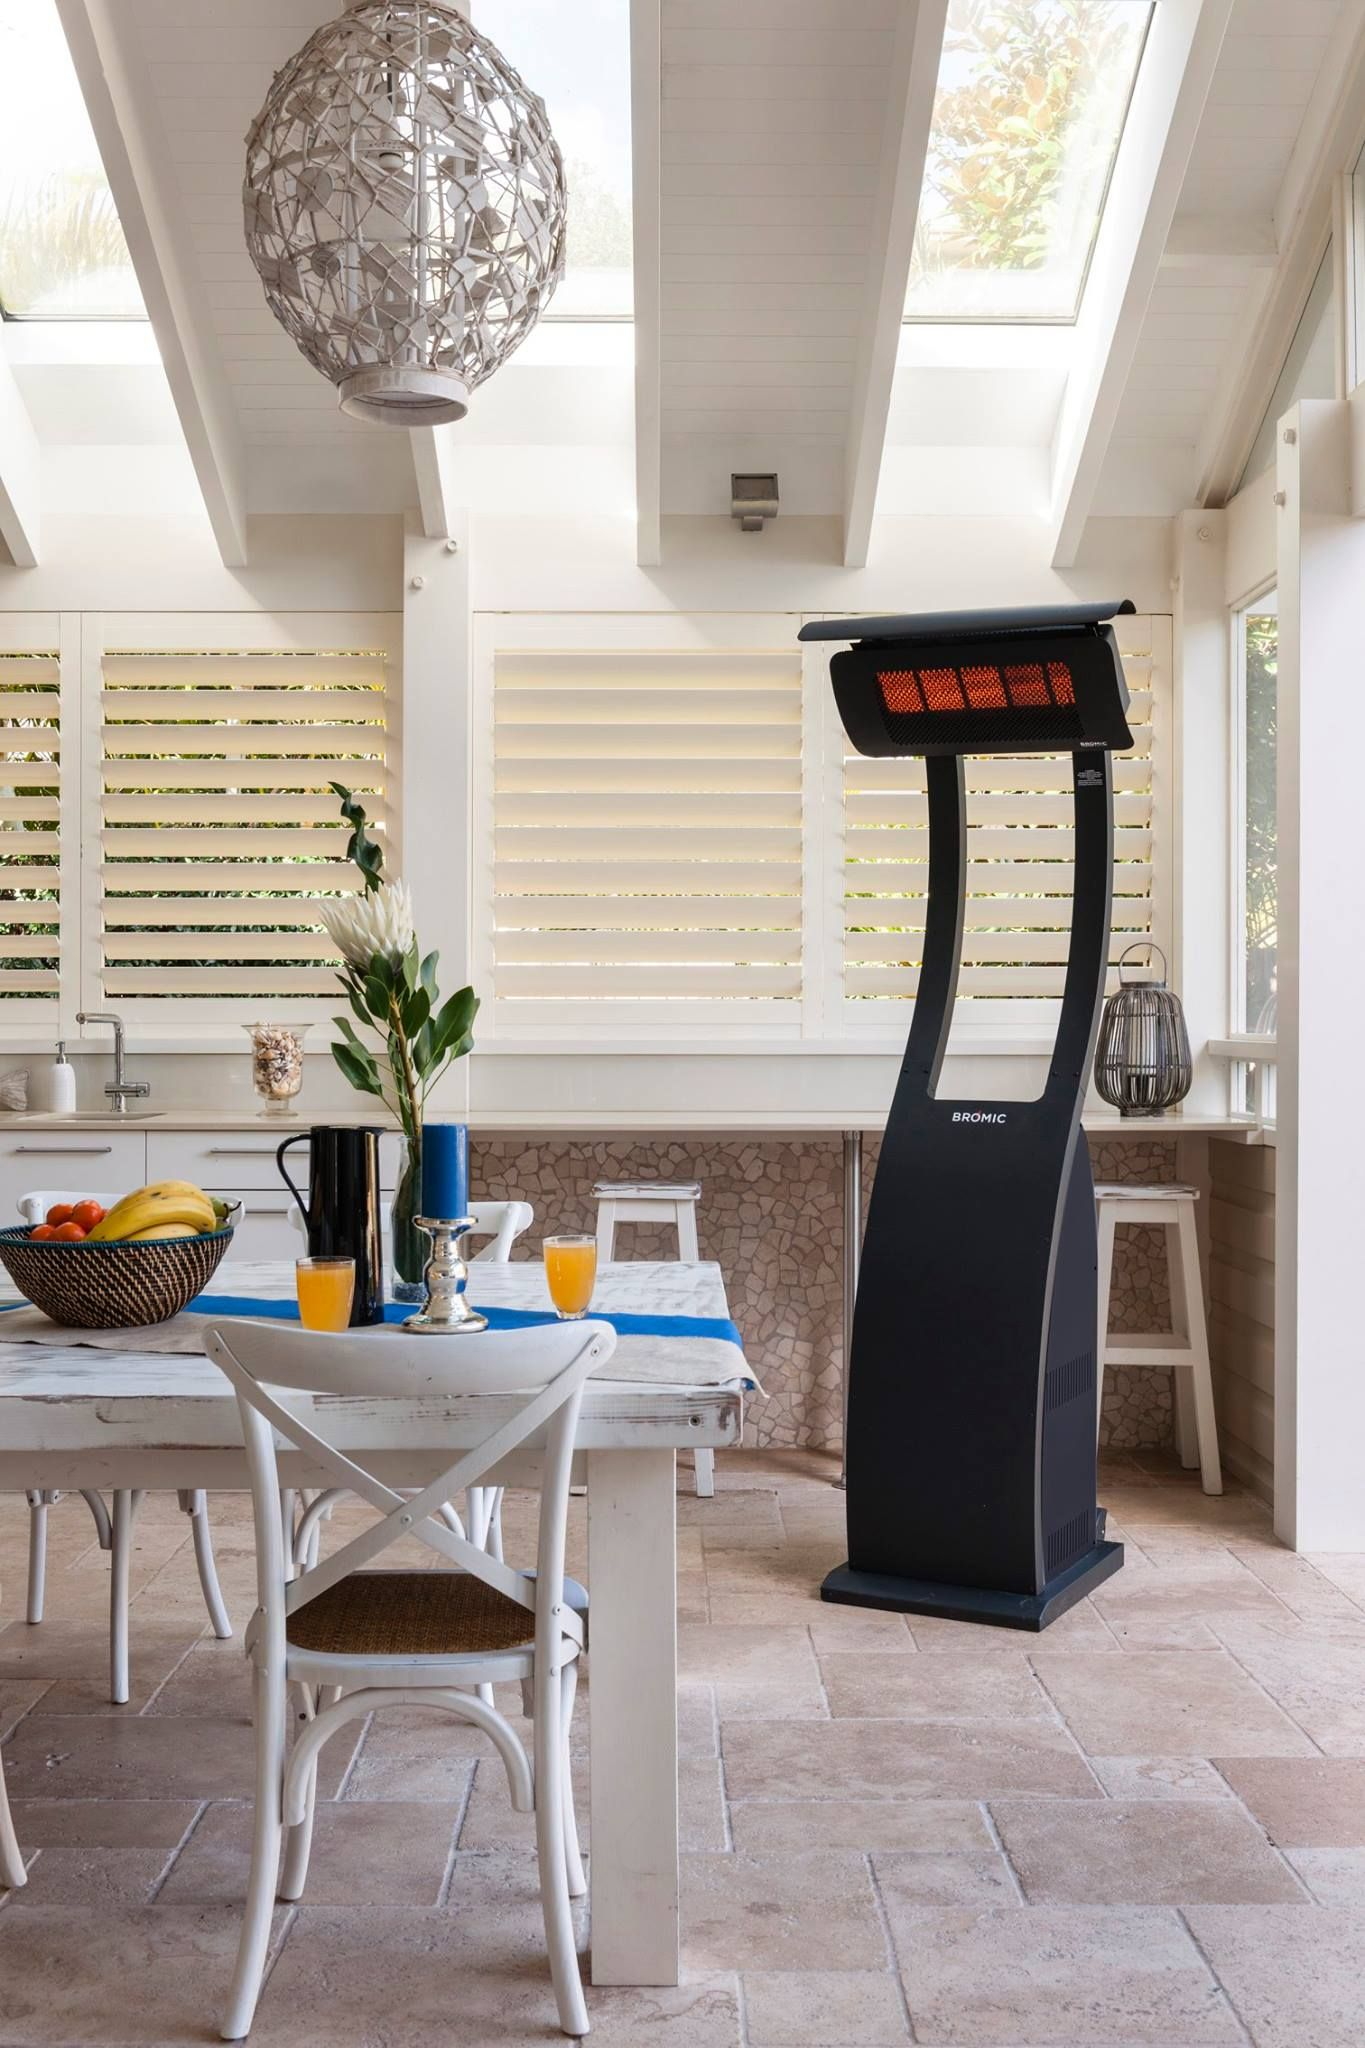 Fixed gas heater performance in a portable heating solution